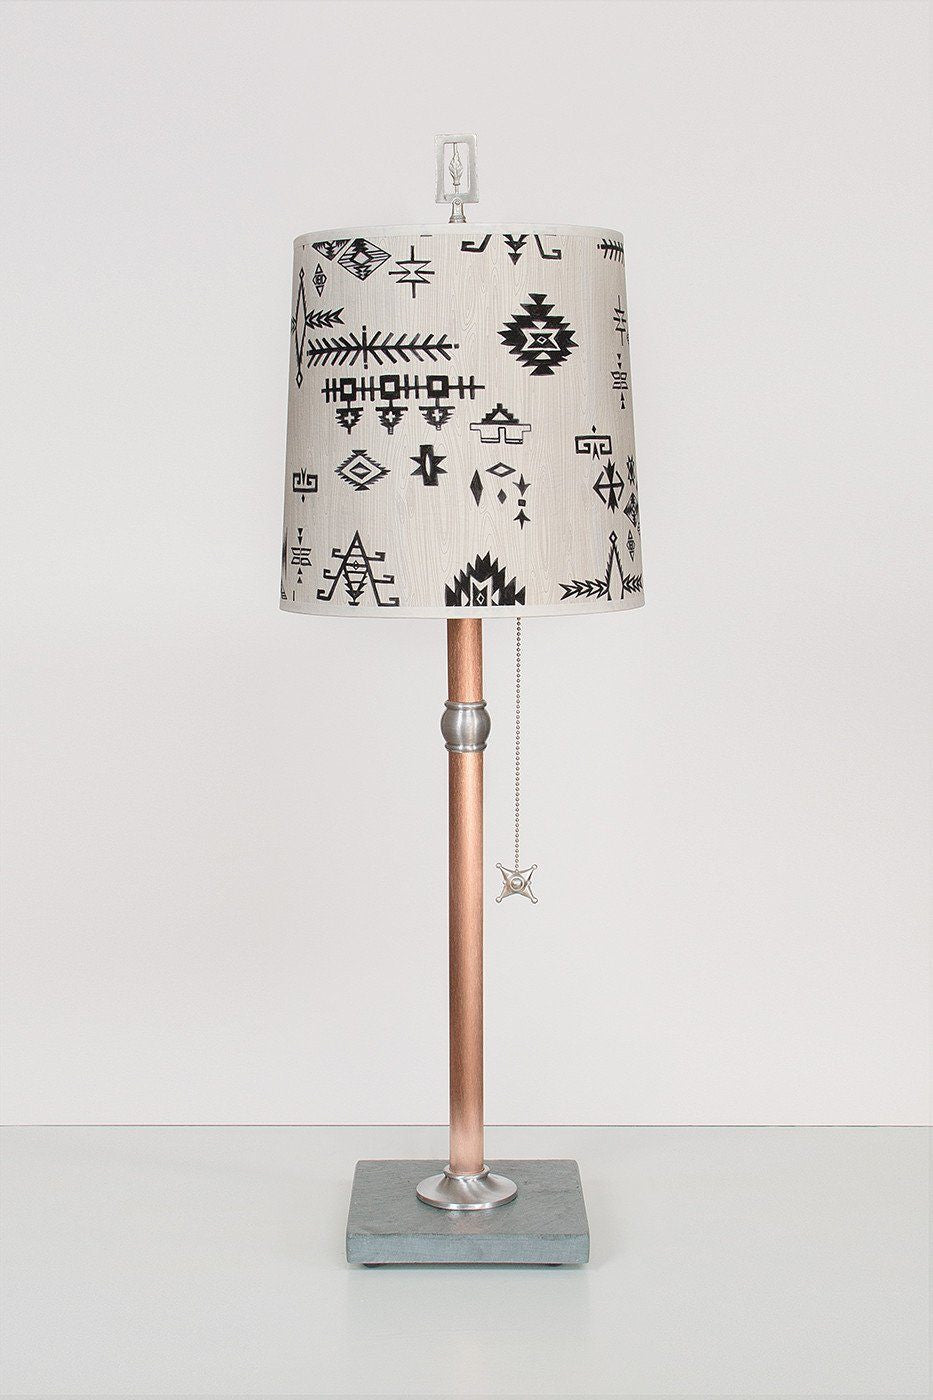 Copper Table Lamp with Medium Drum Shade in Blanket Sketch